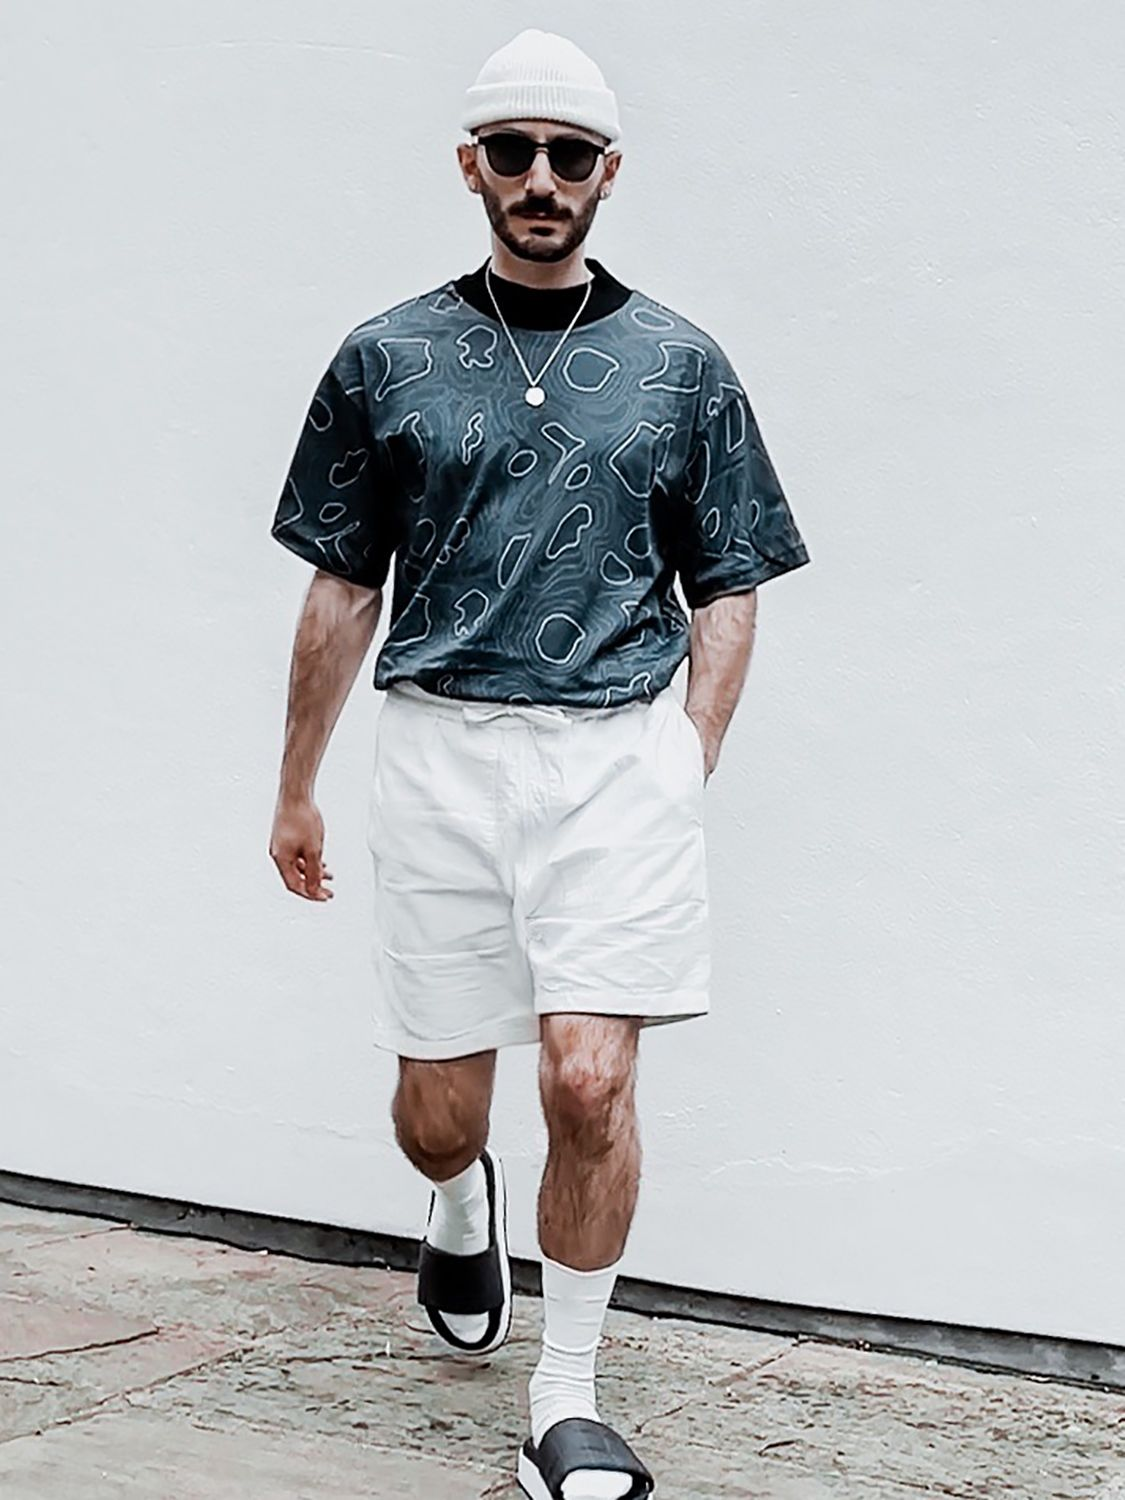 Men's outfit idea for 2021 with black patterned crew neck t-shirt, white sweat shorts, black flipflops. Suitable for summer.